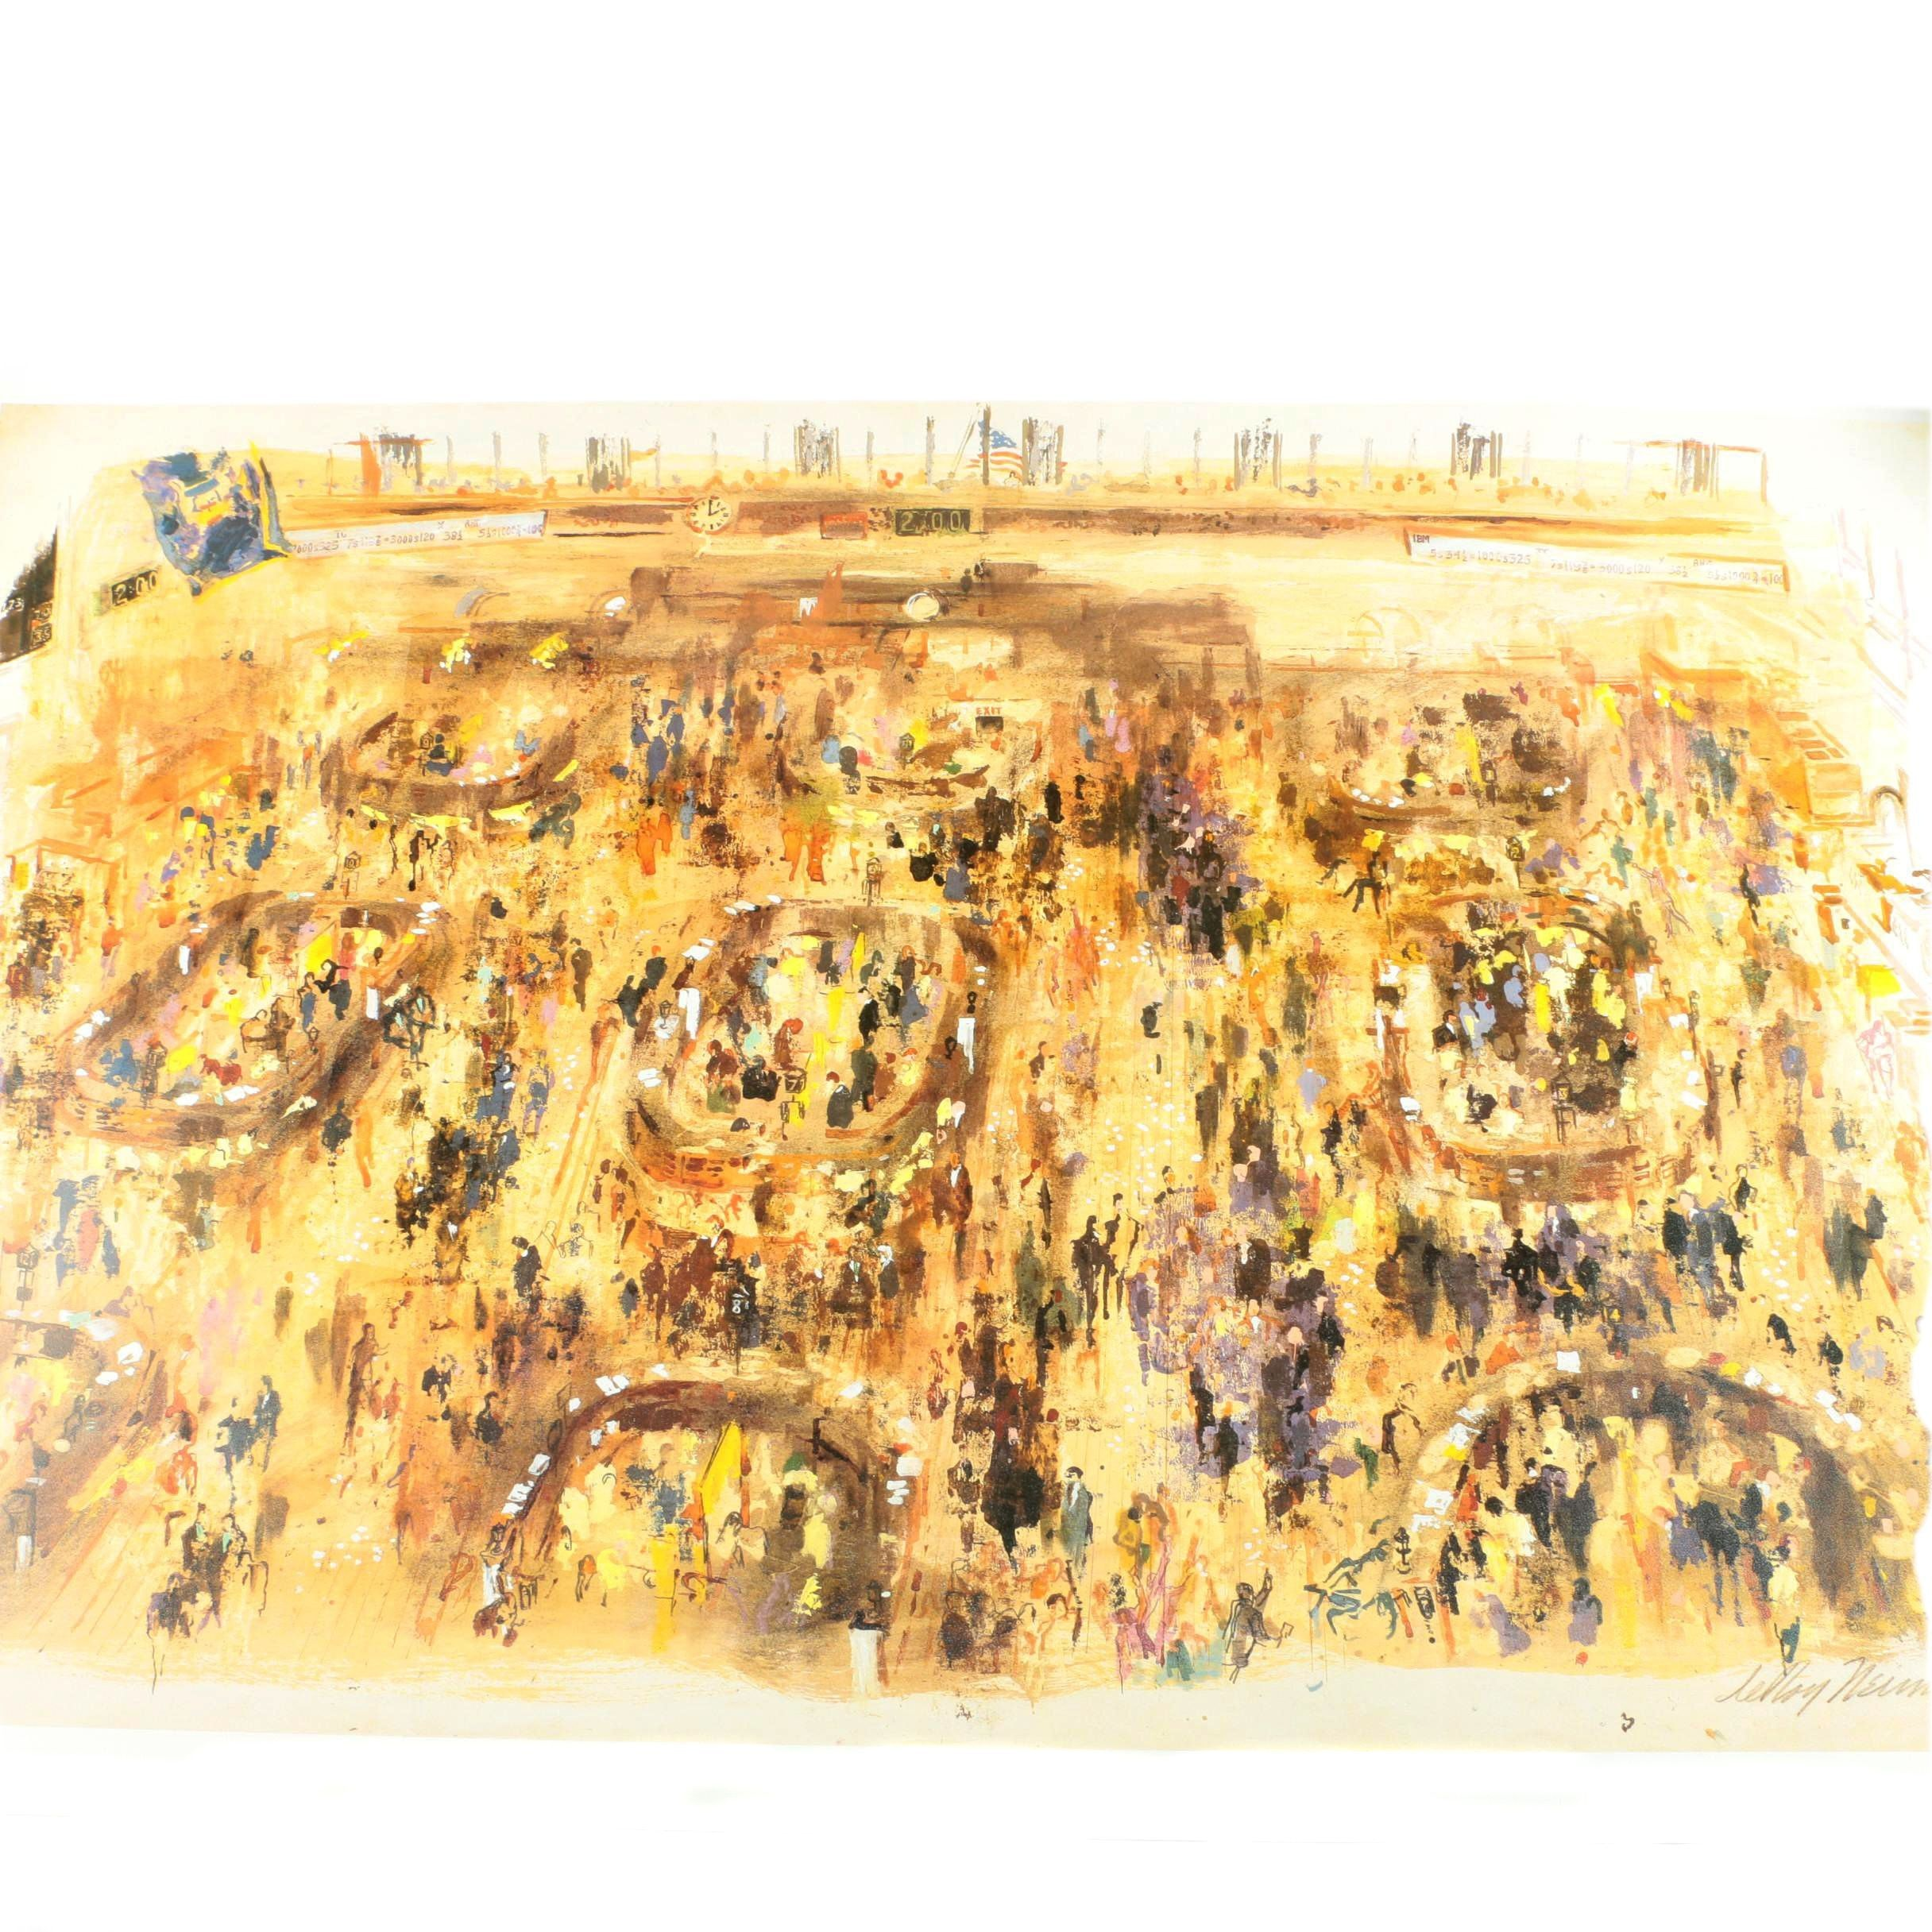 """Reproduction Print After LeRoy Neiman's """"New York Stock Exchange"""""""